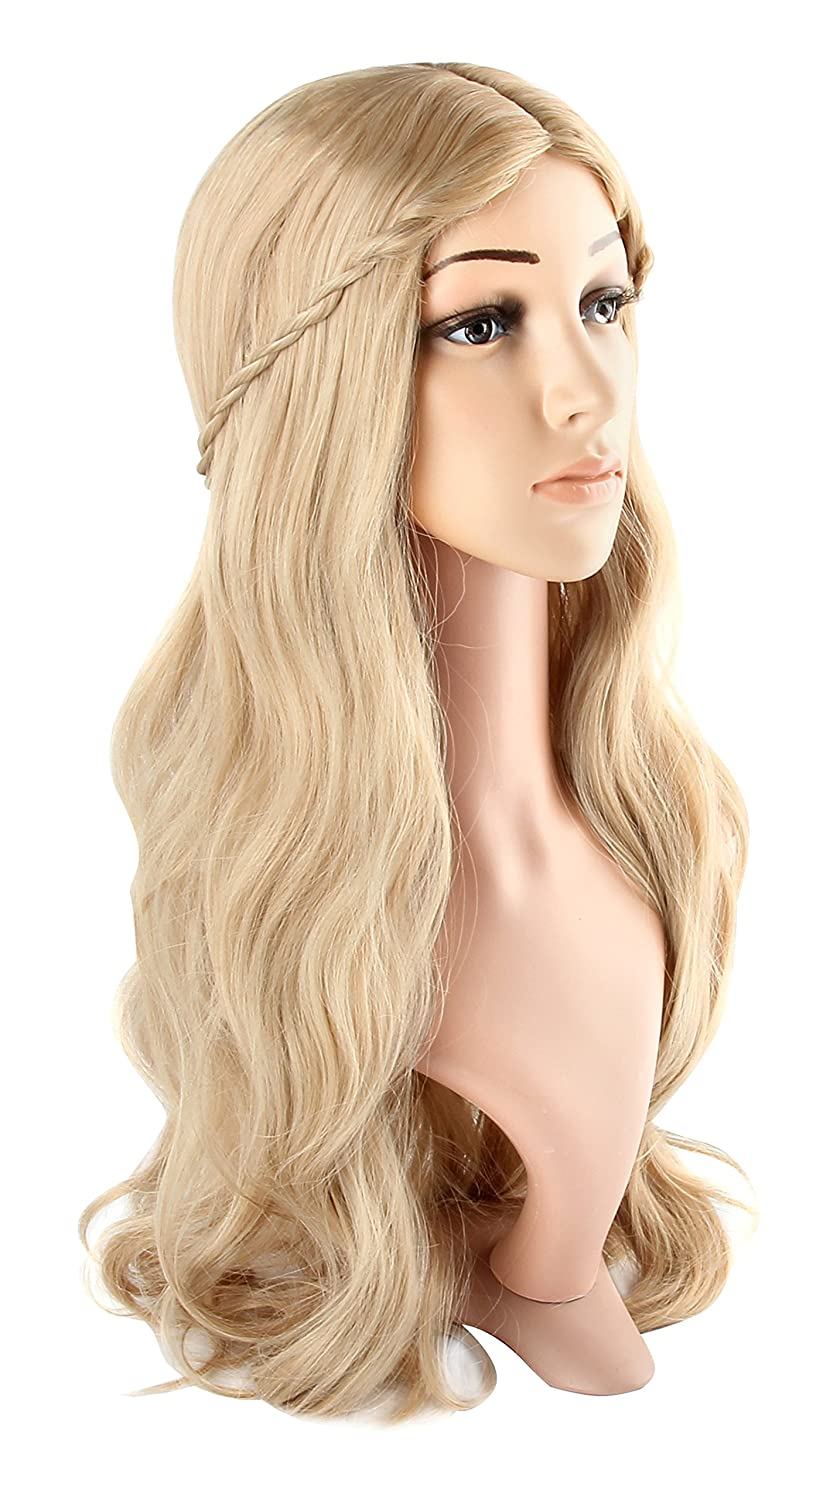 Amazon.com  Acecharming Blonde Curly Wig Women s Long Curly Wigs Cosplay  Party Wig with Wig Cap(Light Blonde)  Beauty 8c8aadba9b